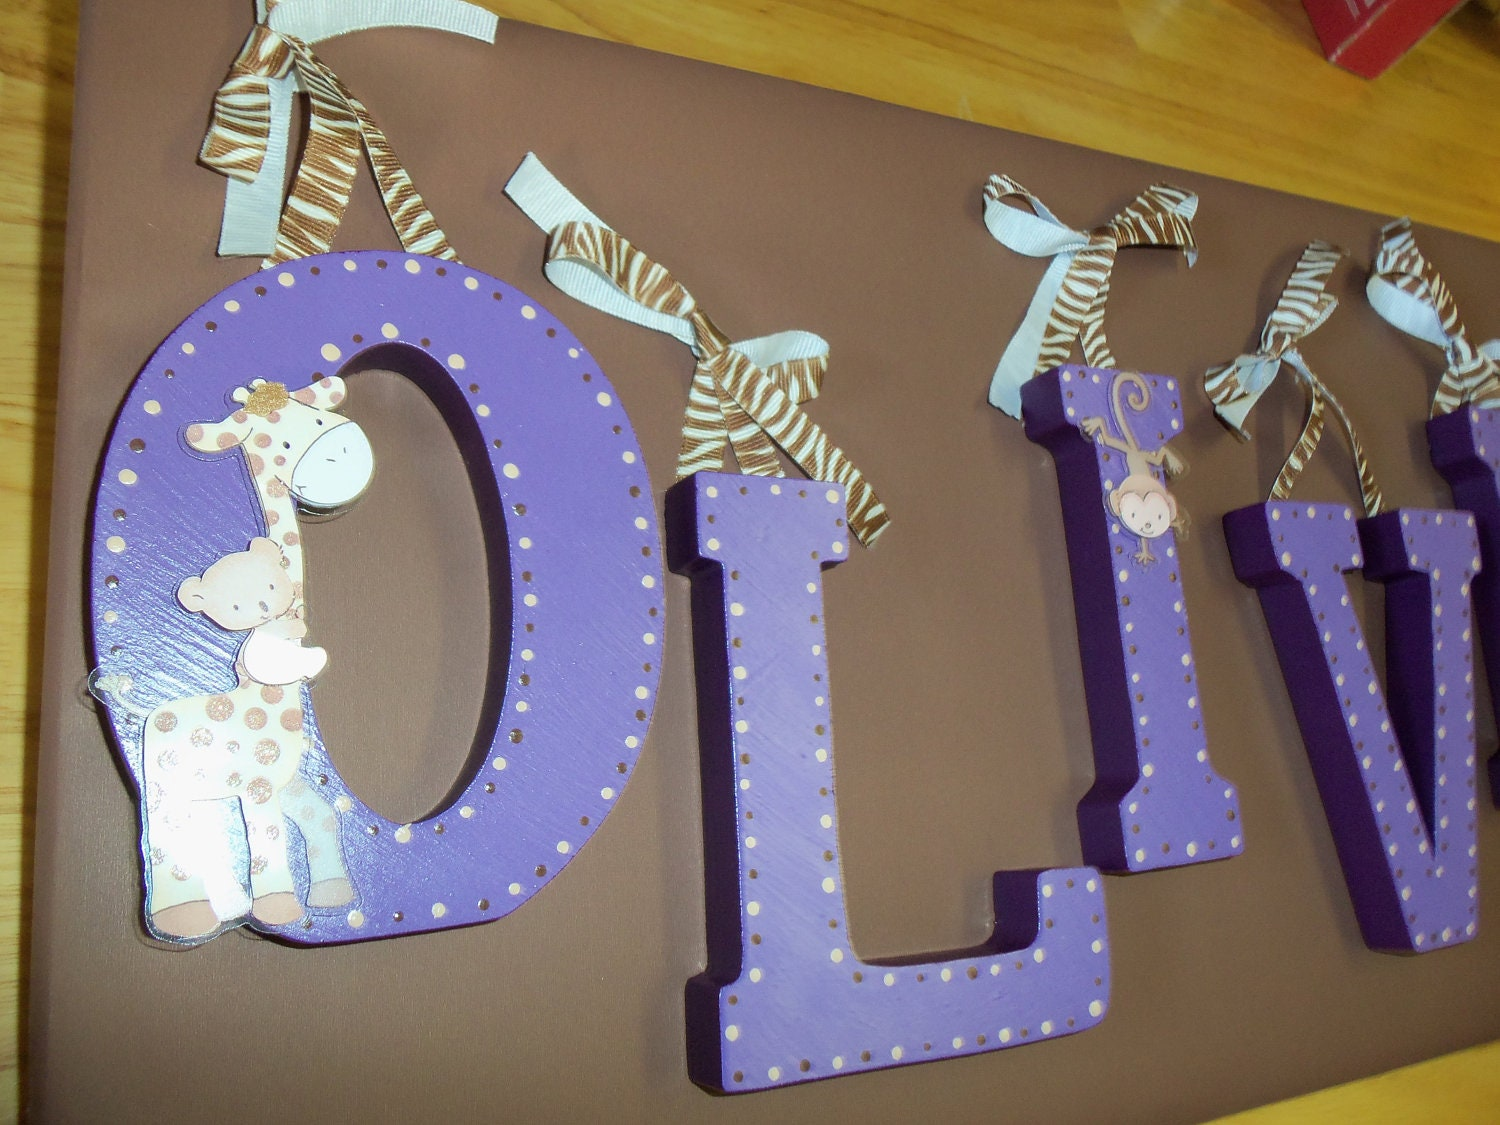 Hand Painted Wooden Letters For Nursery Decor Kids By